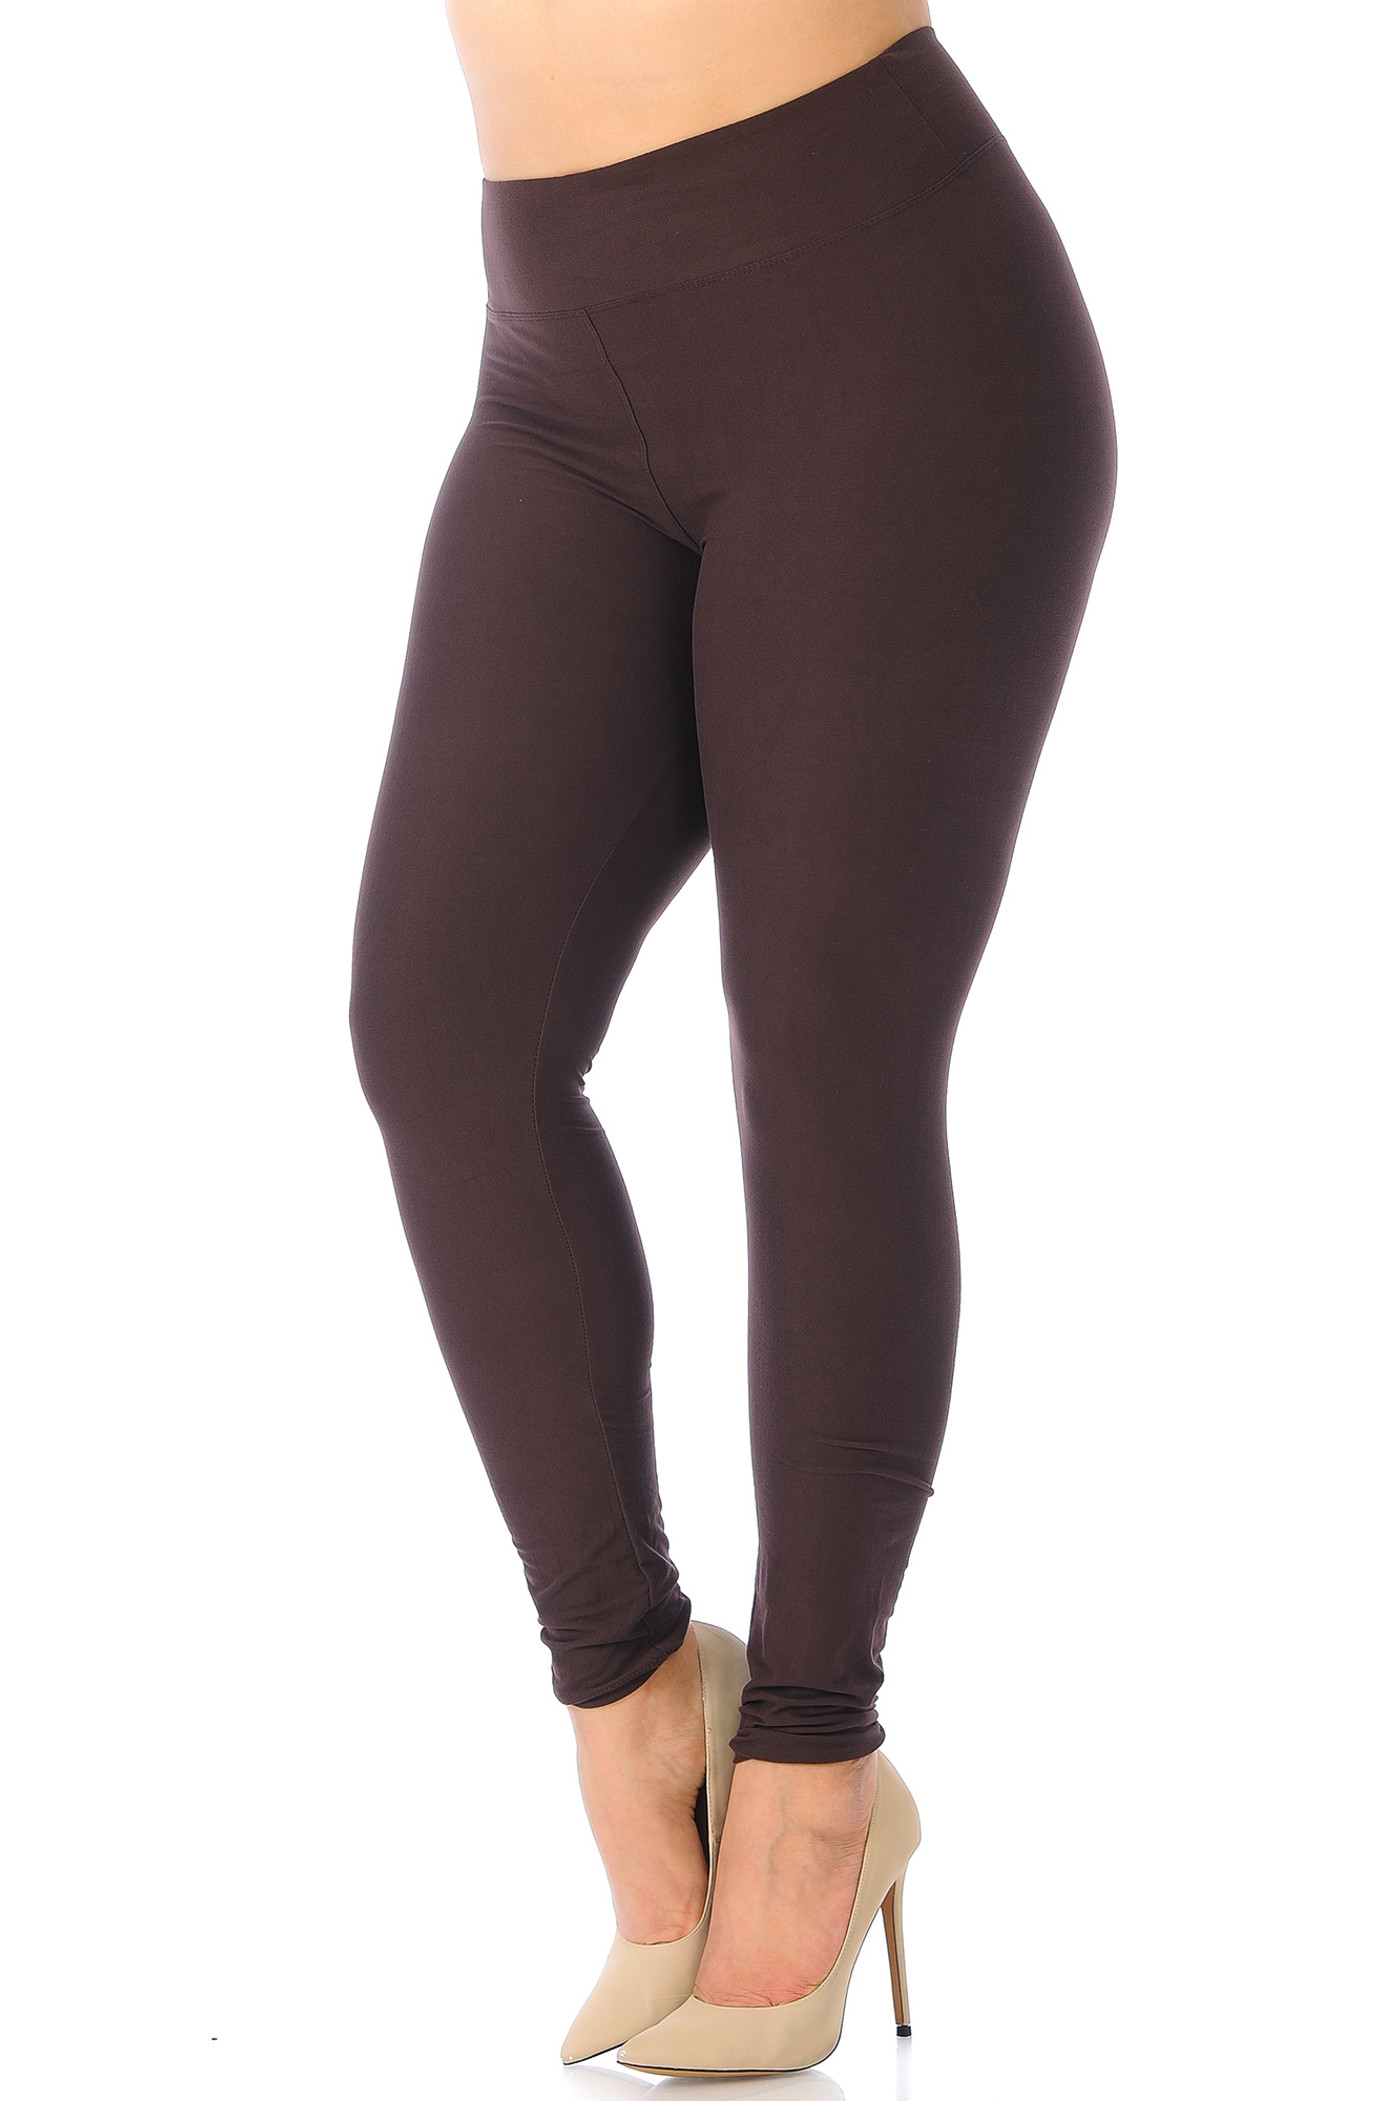 Double Brushed Basic Solid Leggings - Plus Size - EEVEE - 3 Inch